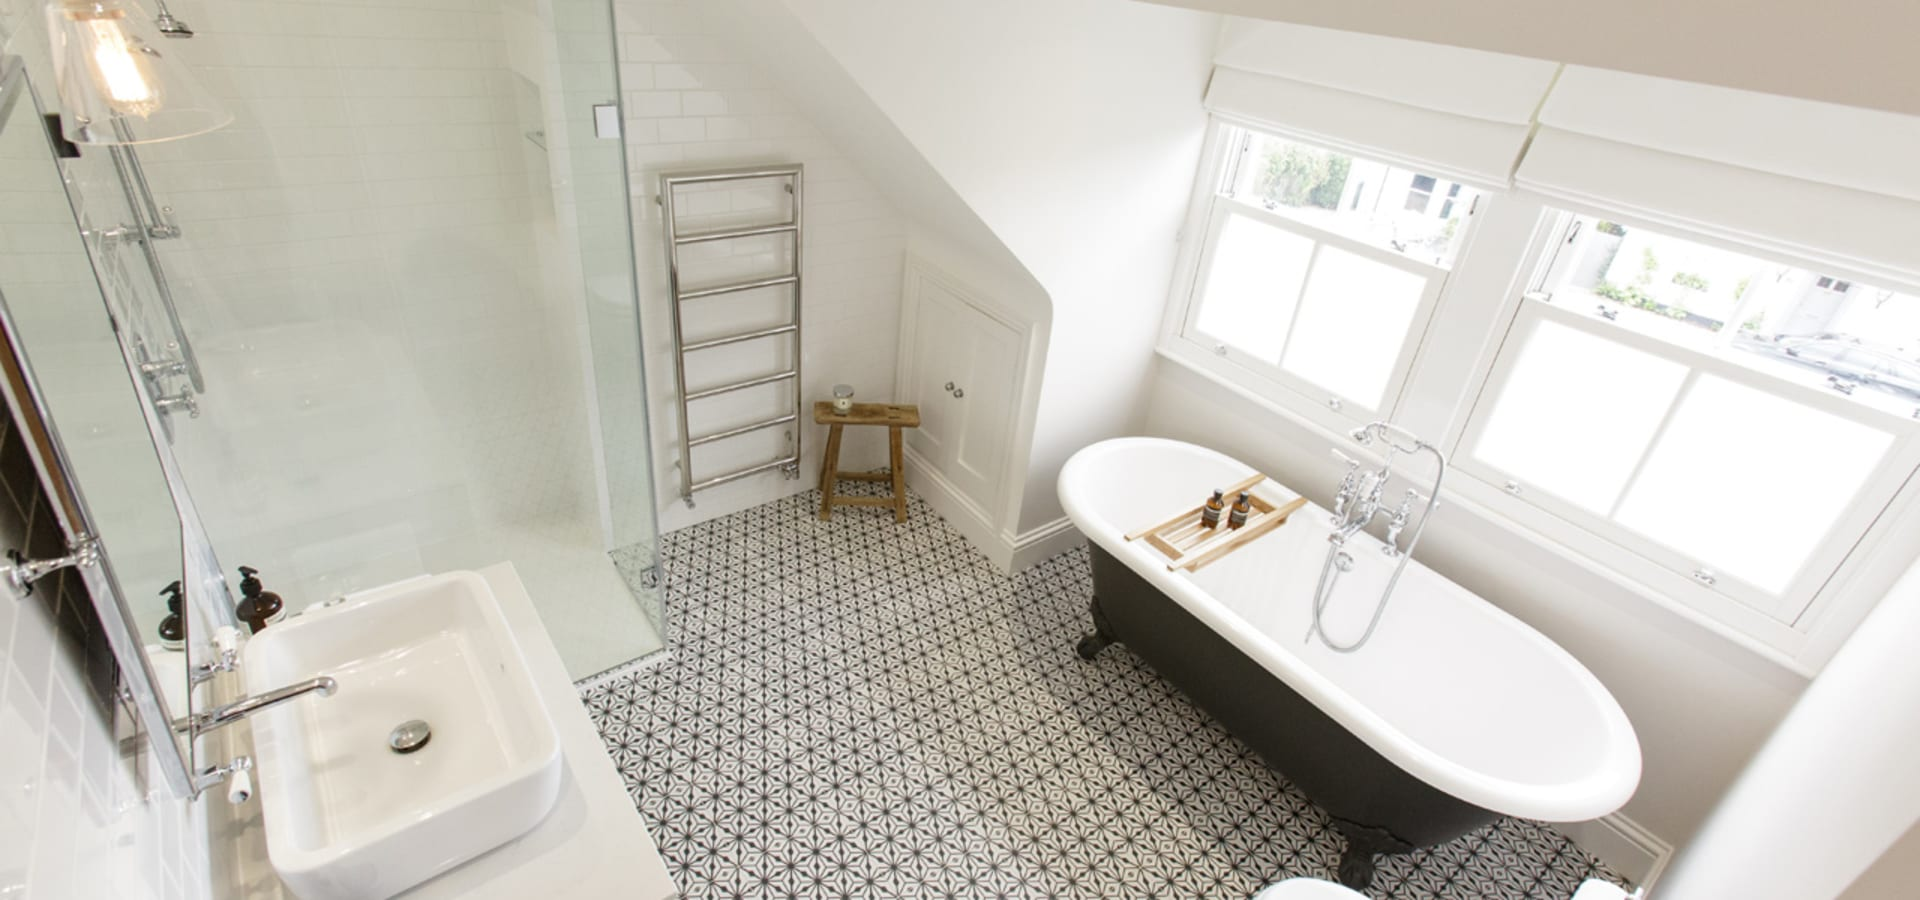 Sanctuary Kitchens & Bathrooms: Bathroom Designers in Shepperton ...